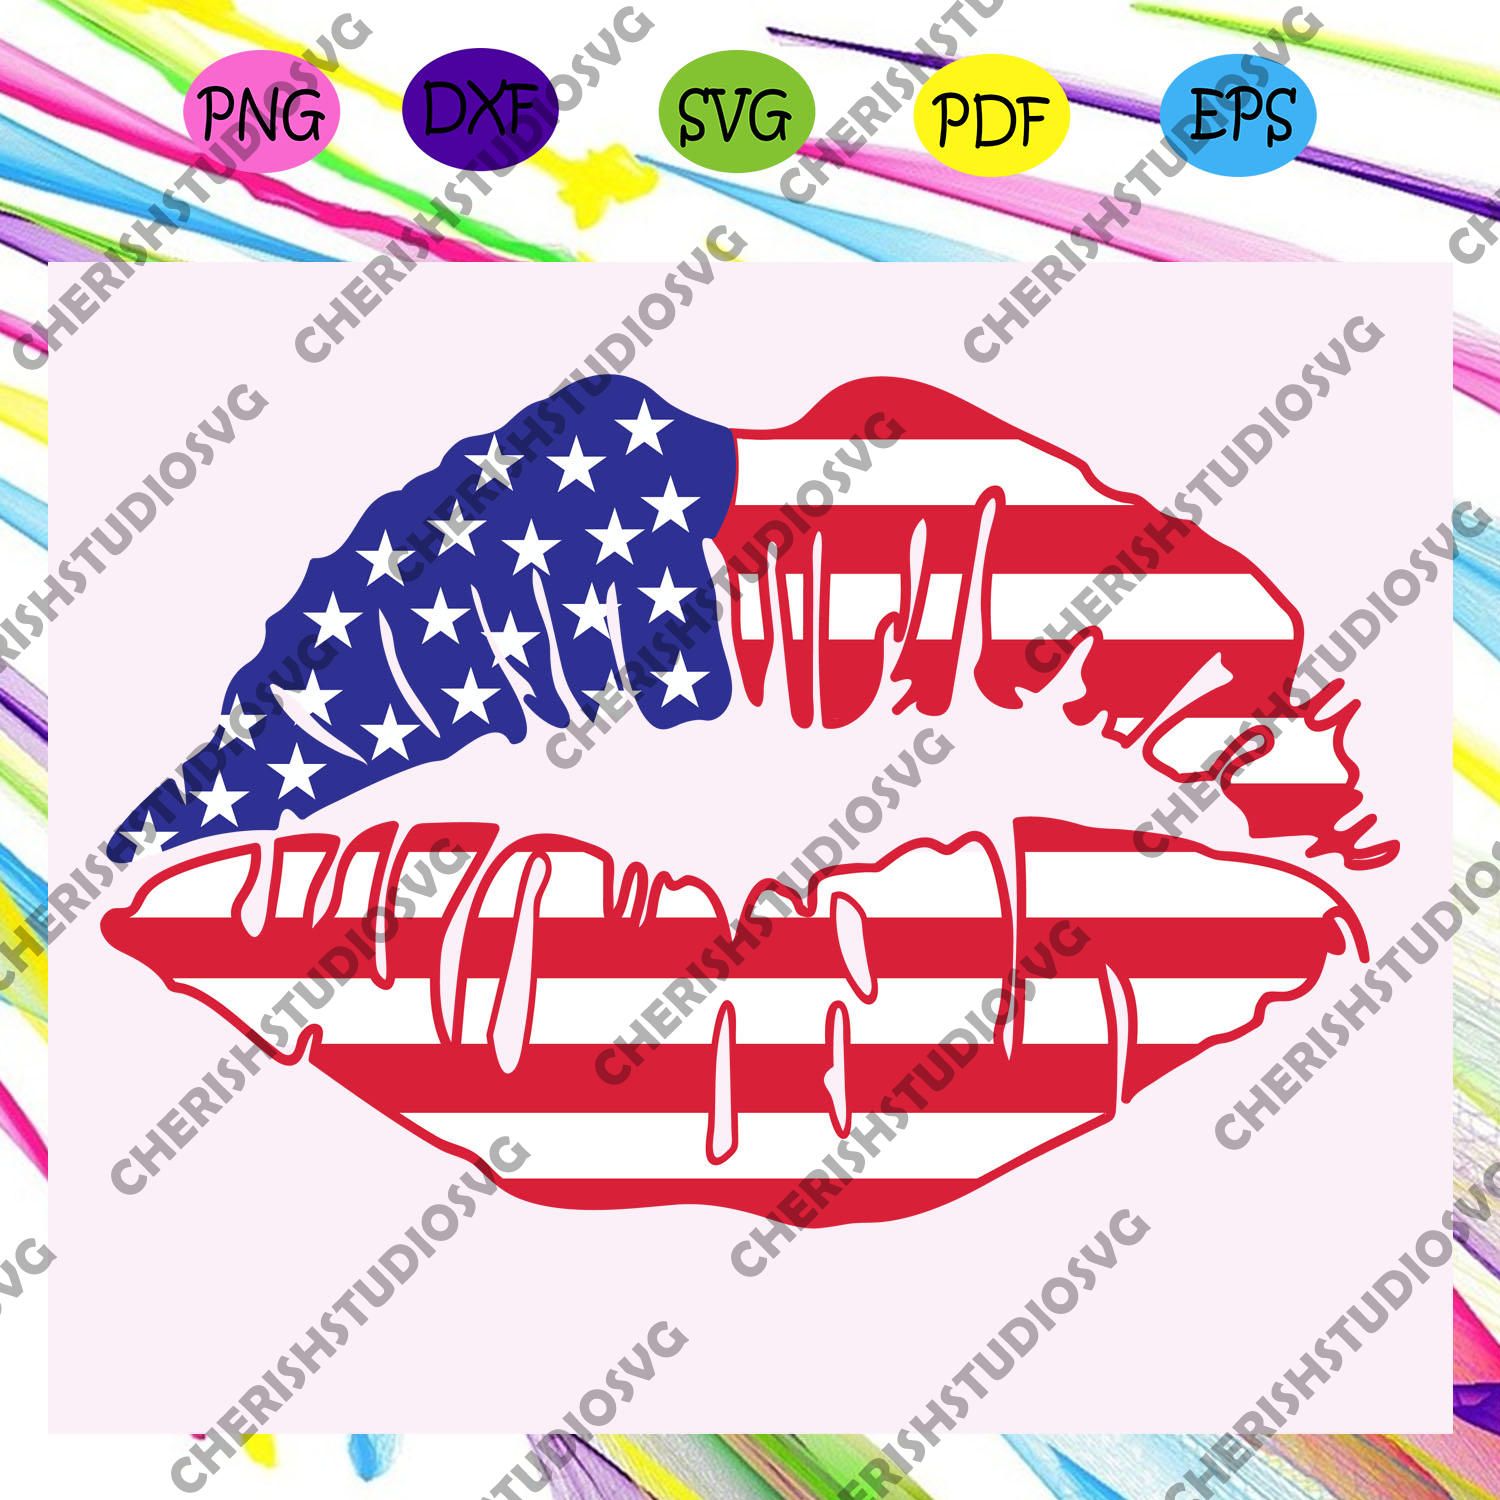 4th of july svg, independence day svg, happy 4th of july svg,patriotic svg, independence day gift, For Silhouette, Files For Cricut, SVG, DXF, EPS, PNG Instant Download